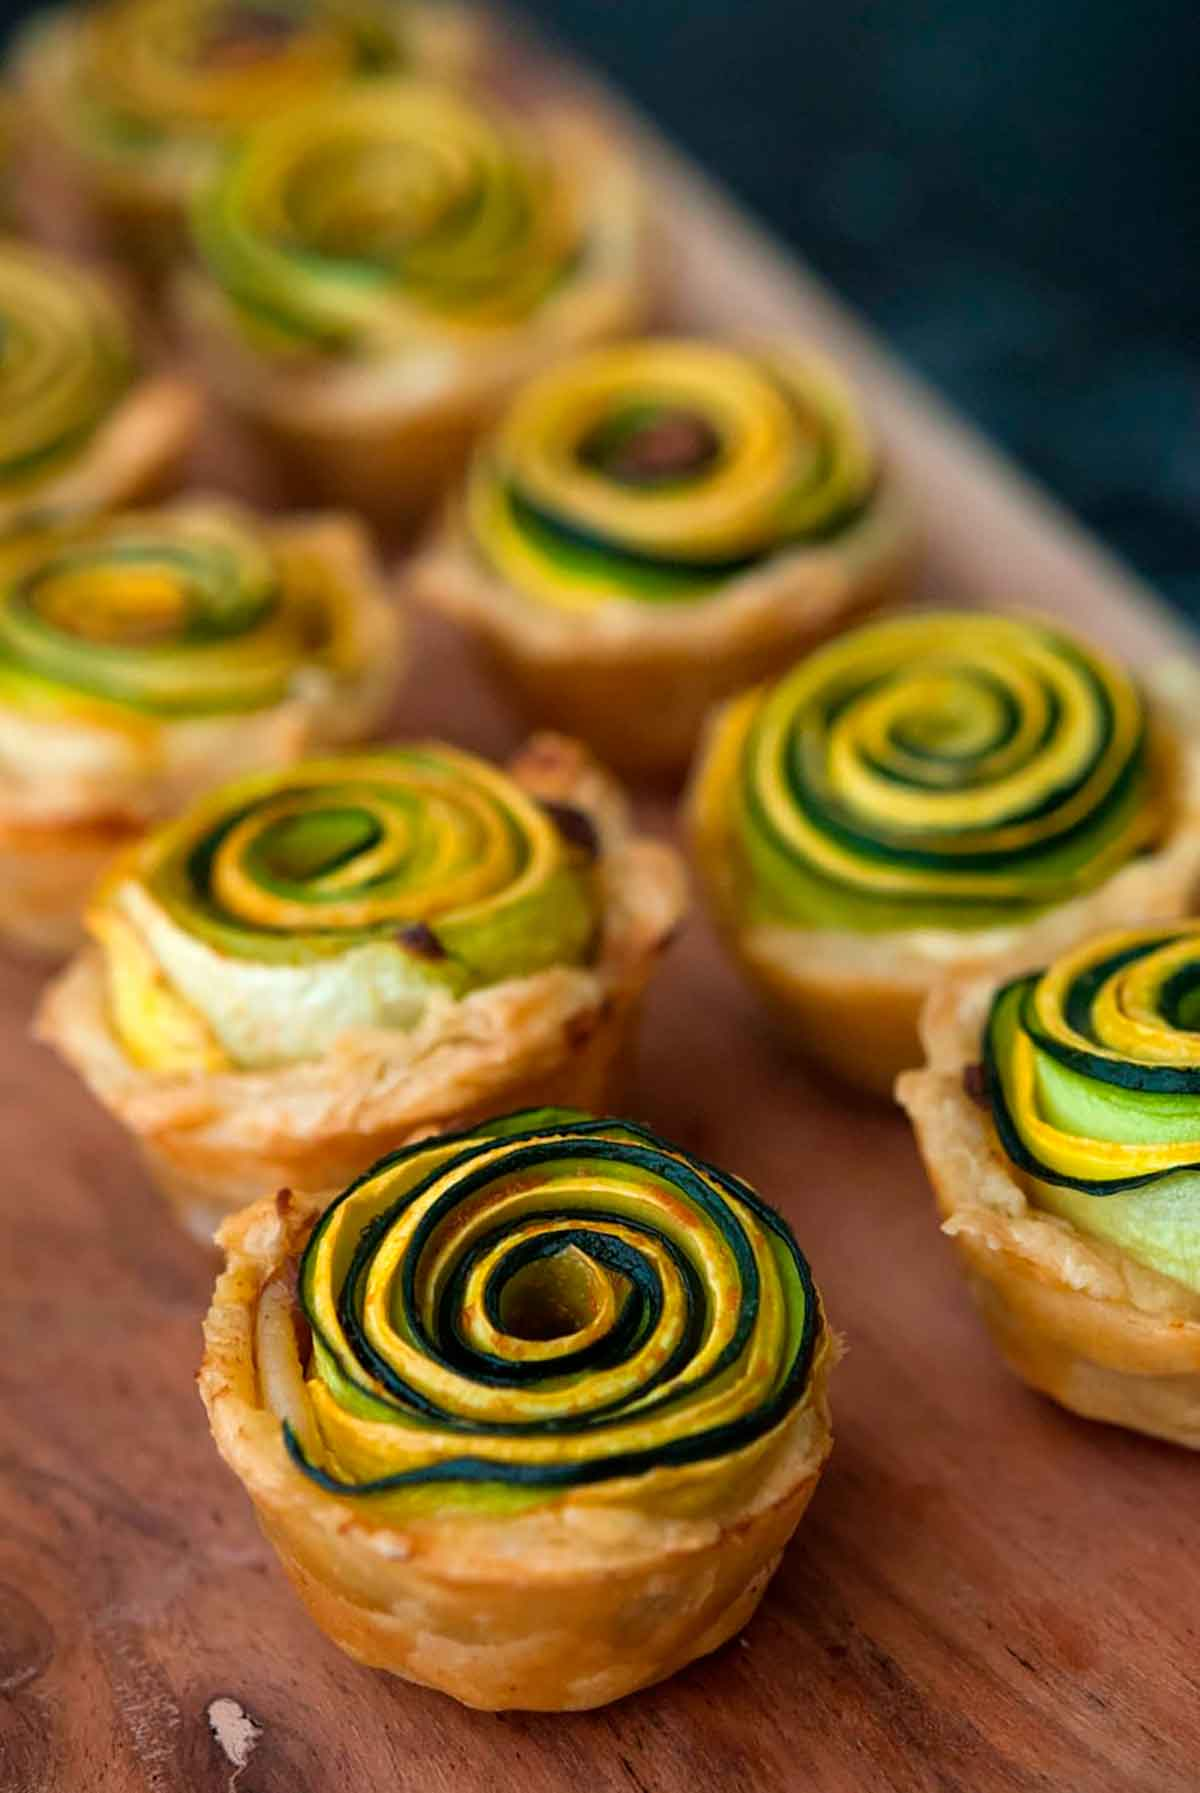 8 squash rosettes on a wooden tray.